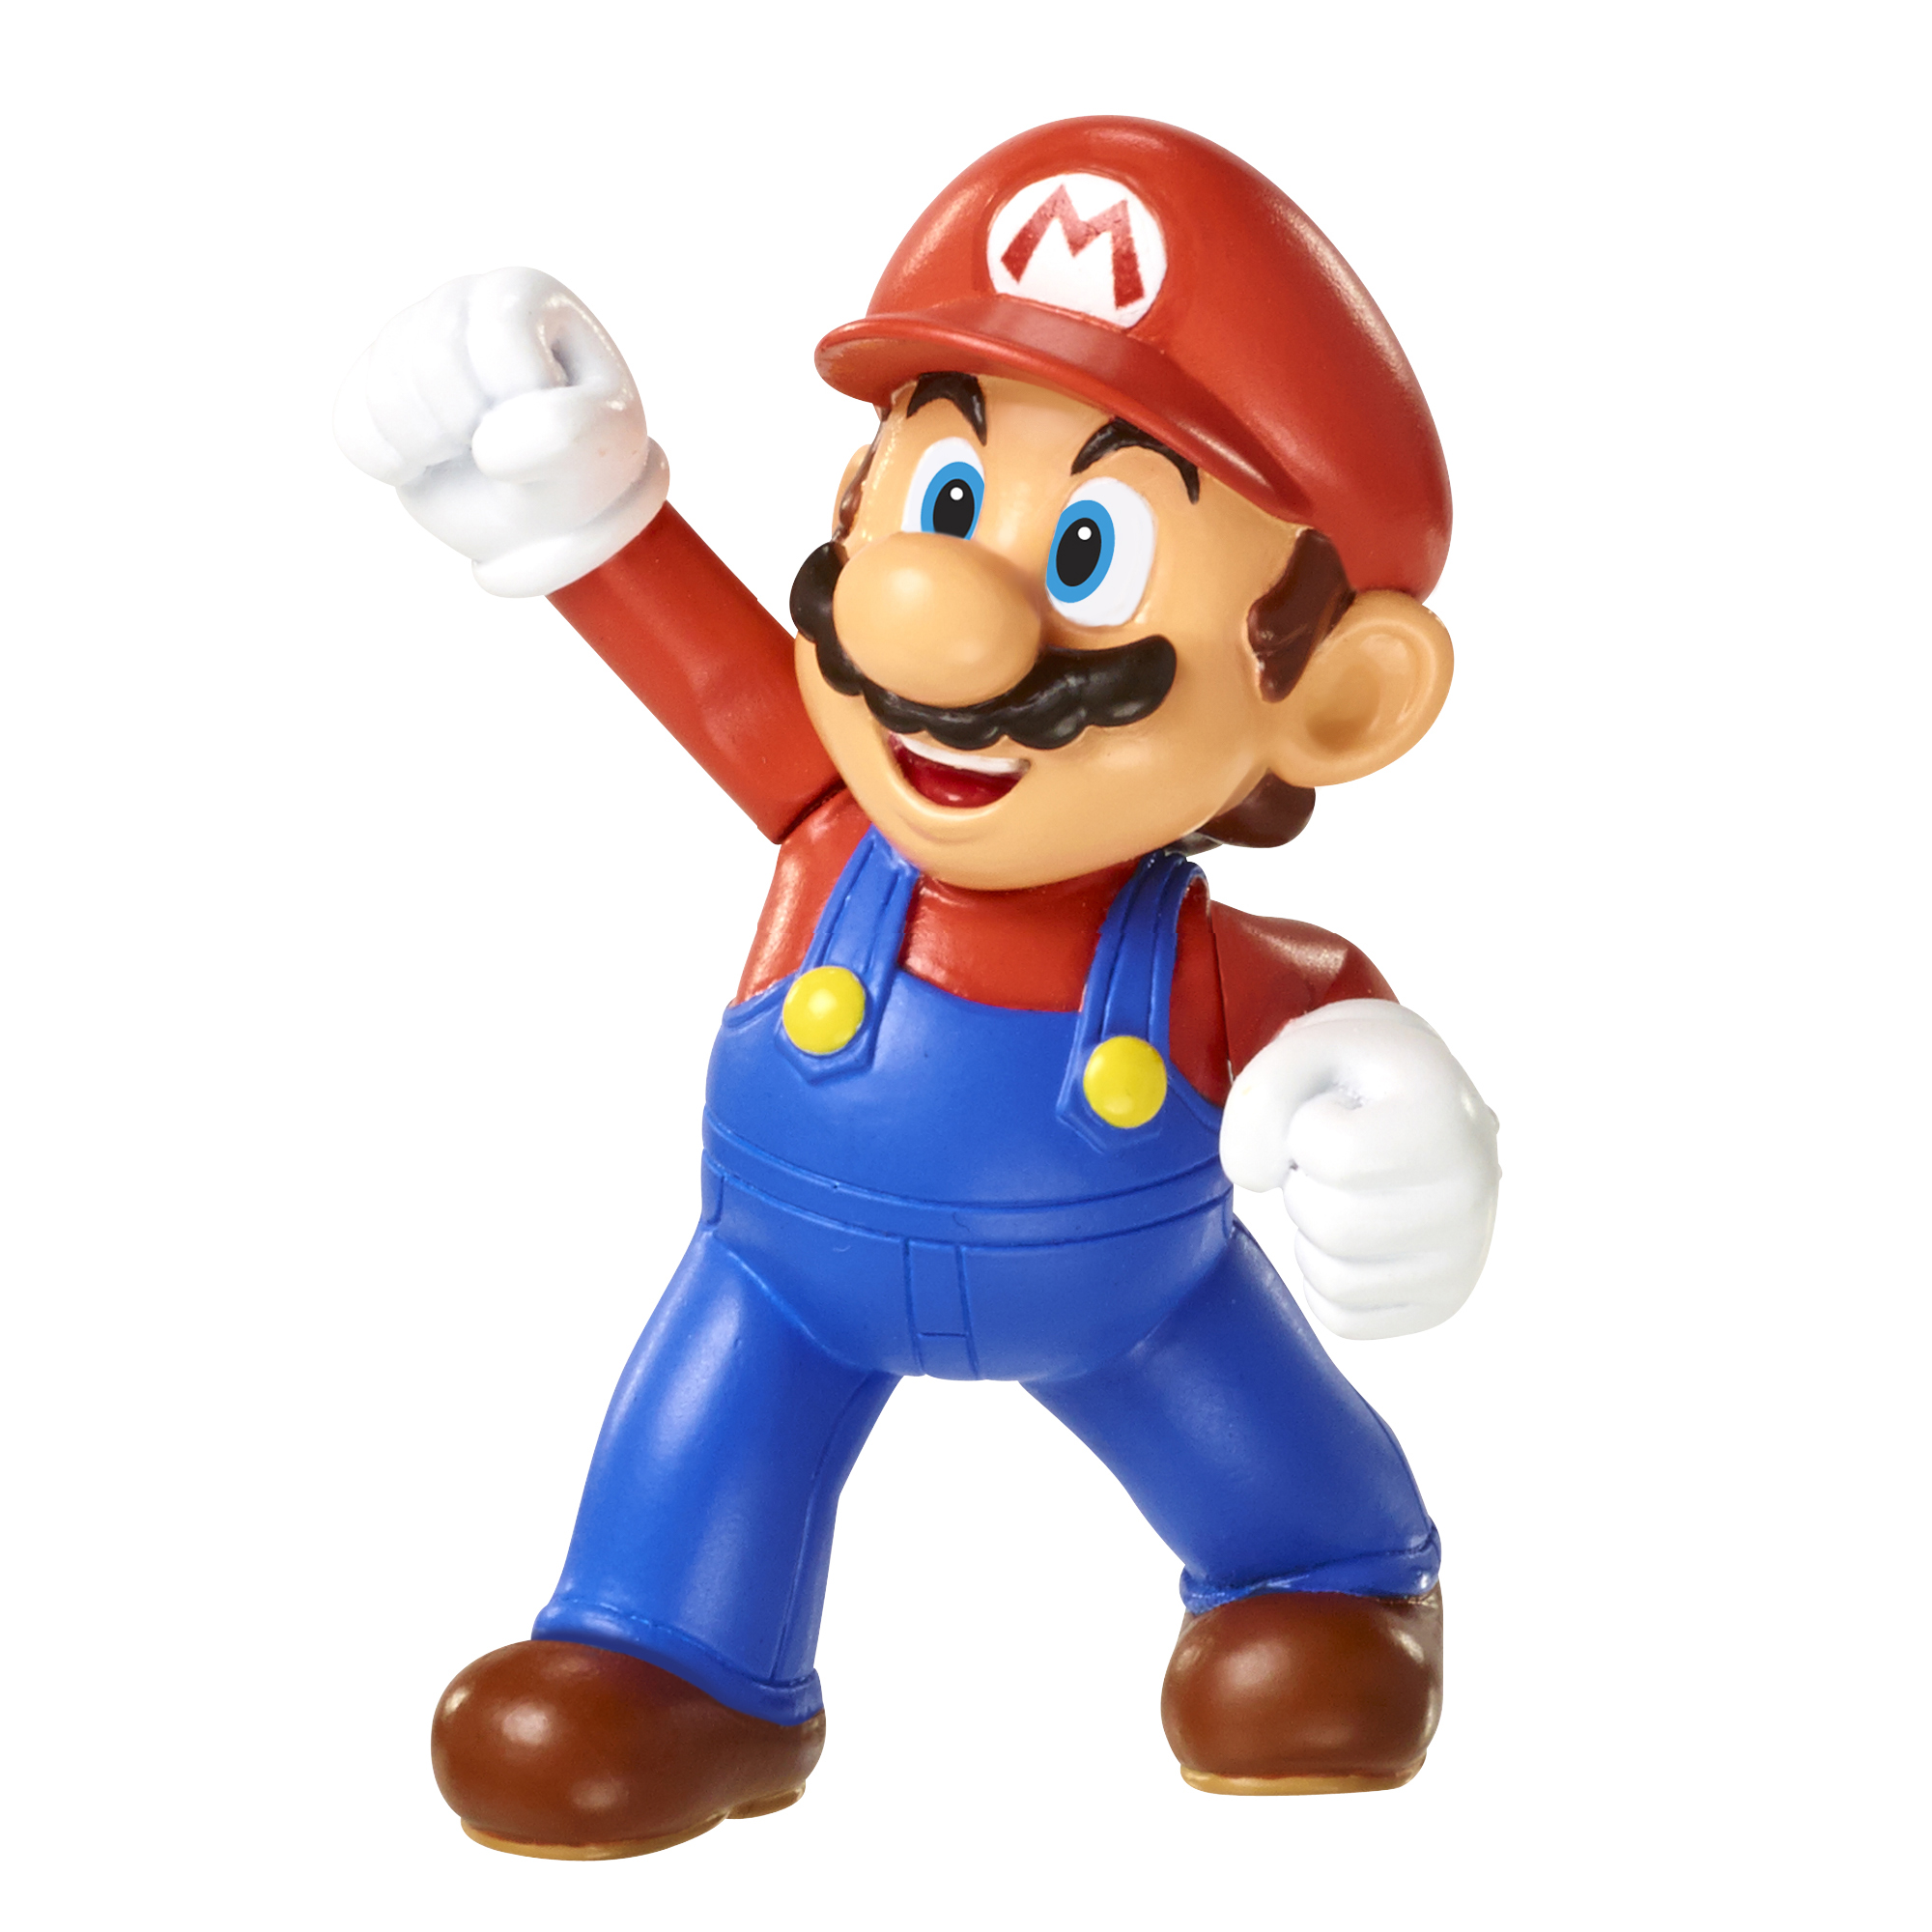 0-39897-91422-0 Nintendo_2.5in_Figs_Wv3_Mario_01